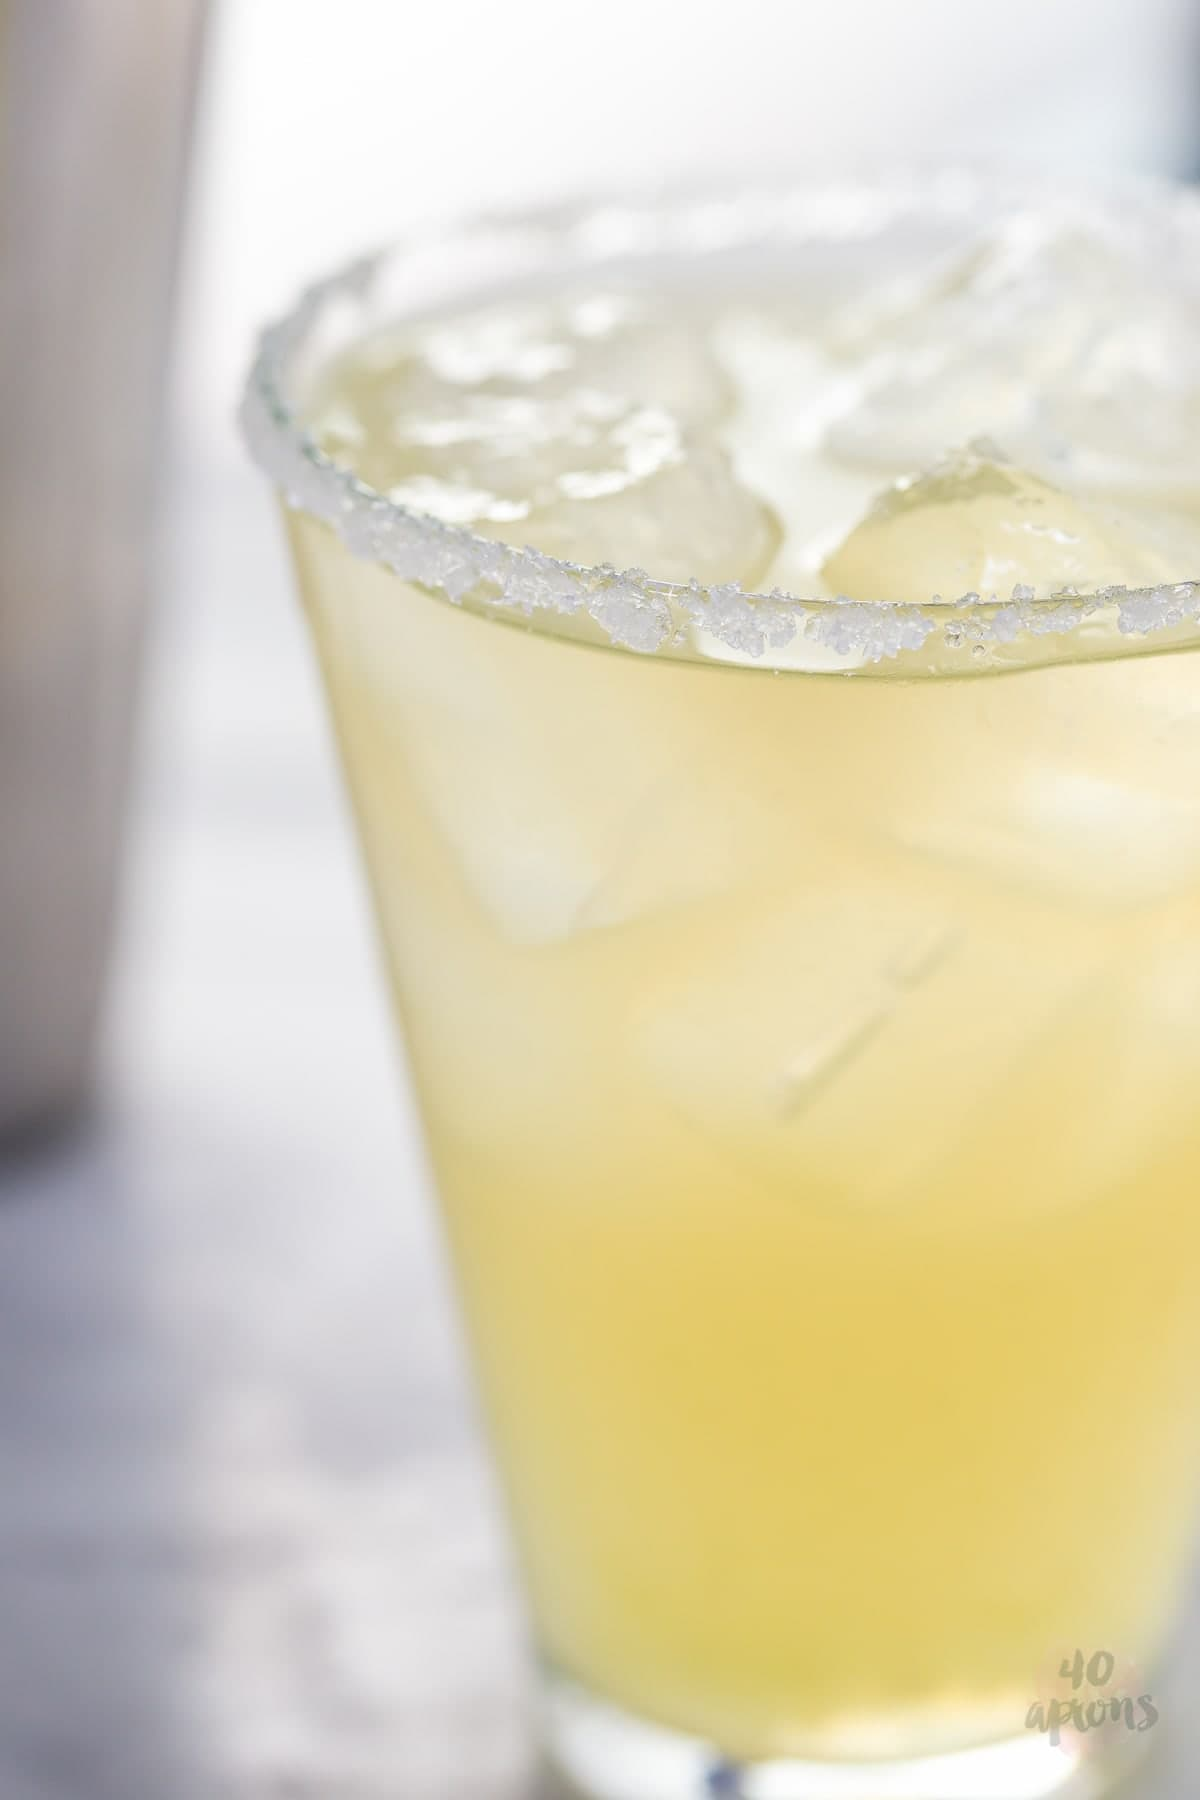 These healthy margaritas are made with simple ingredients: lime juice, honey, water, and booze. Sugar free and paleo (I mean... tequila is pretty much paleo, right?), they're the closest thing to healthy margaritas that exist! Ideal for Cinco de Mayo or any fiesta occasion (slash random weekday), you'll fall in love with how super quick and easy these healthy margaritas are, too.